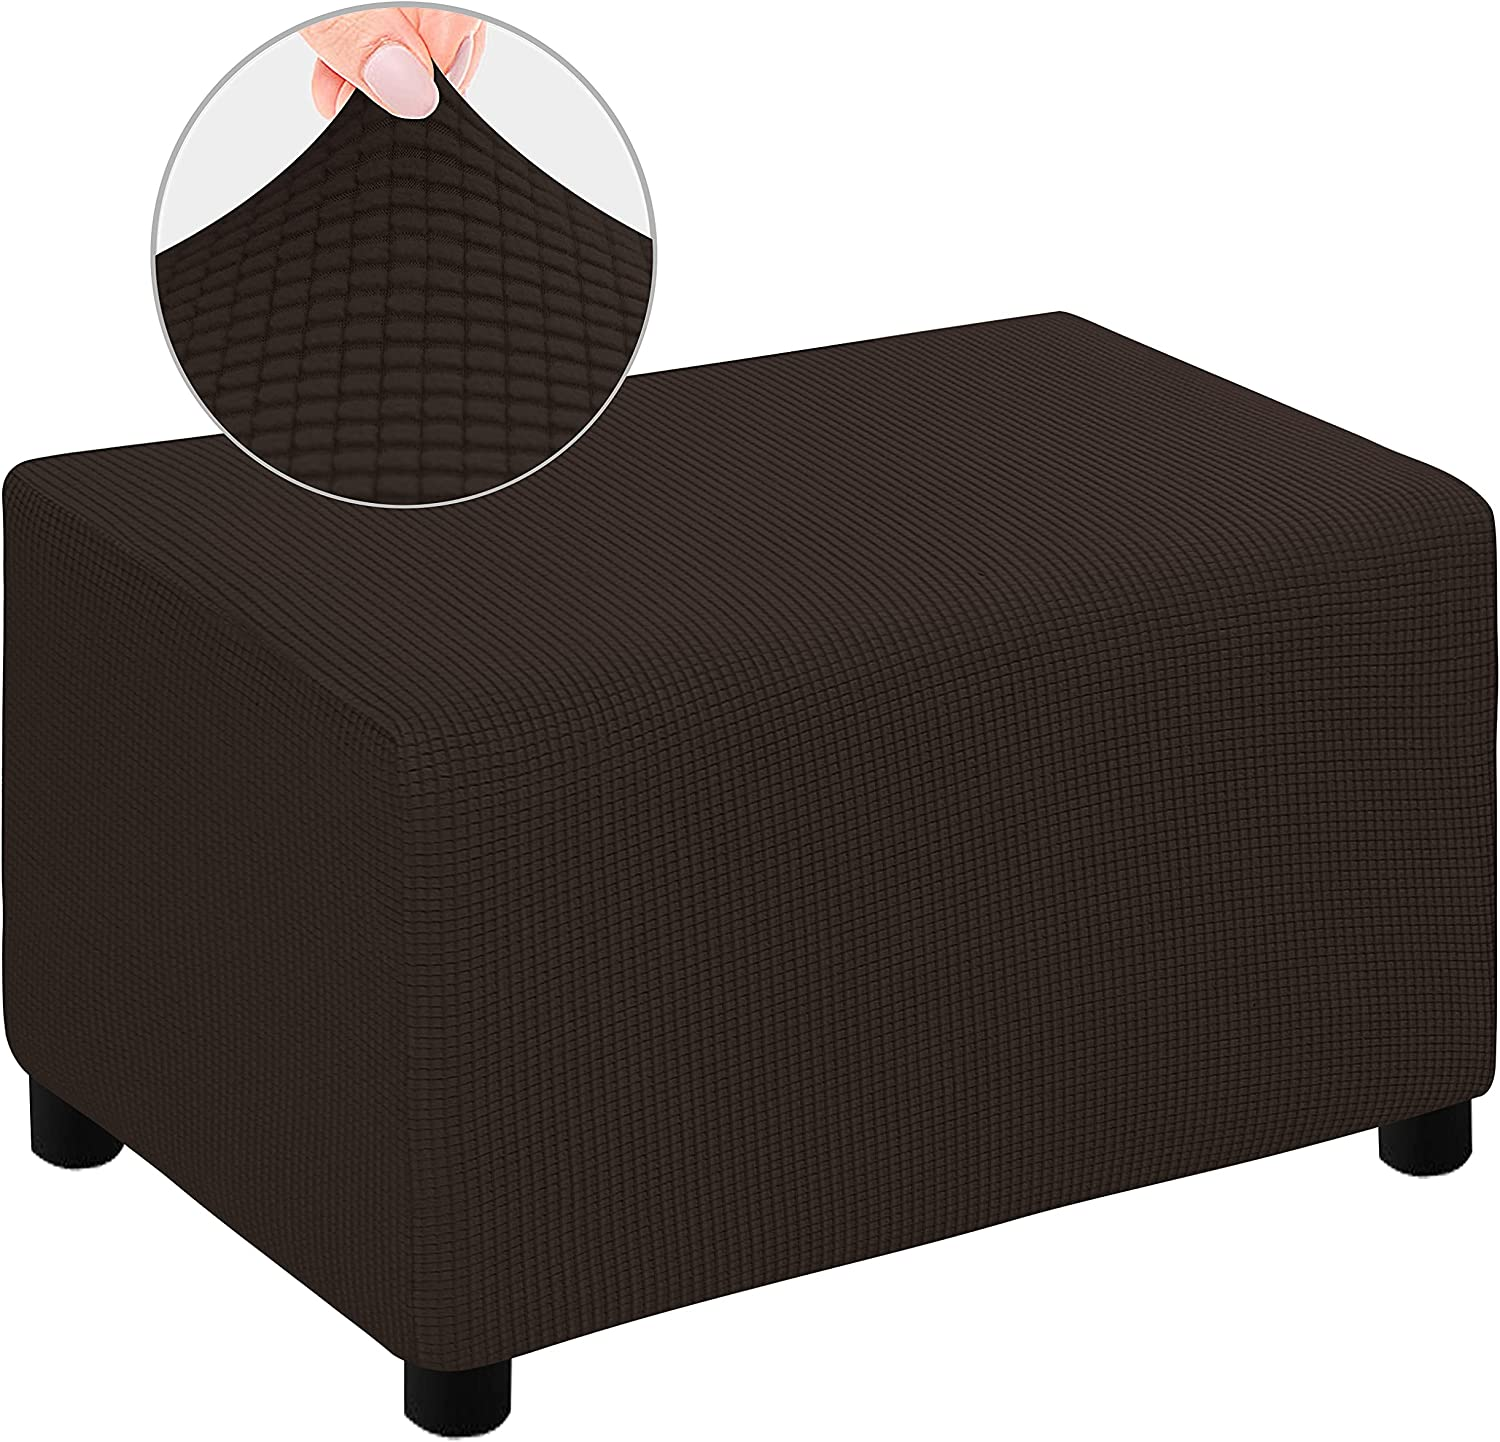 DANABEST Super Stretch Jacquard Ottoman Covers Slipcover Rectangle Stool Furniture Protector for Pets,Kids(Chocolate,Ottoman)